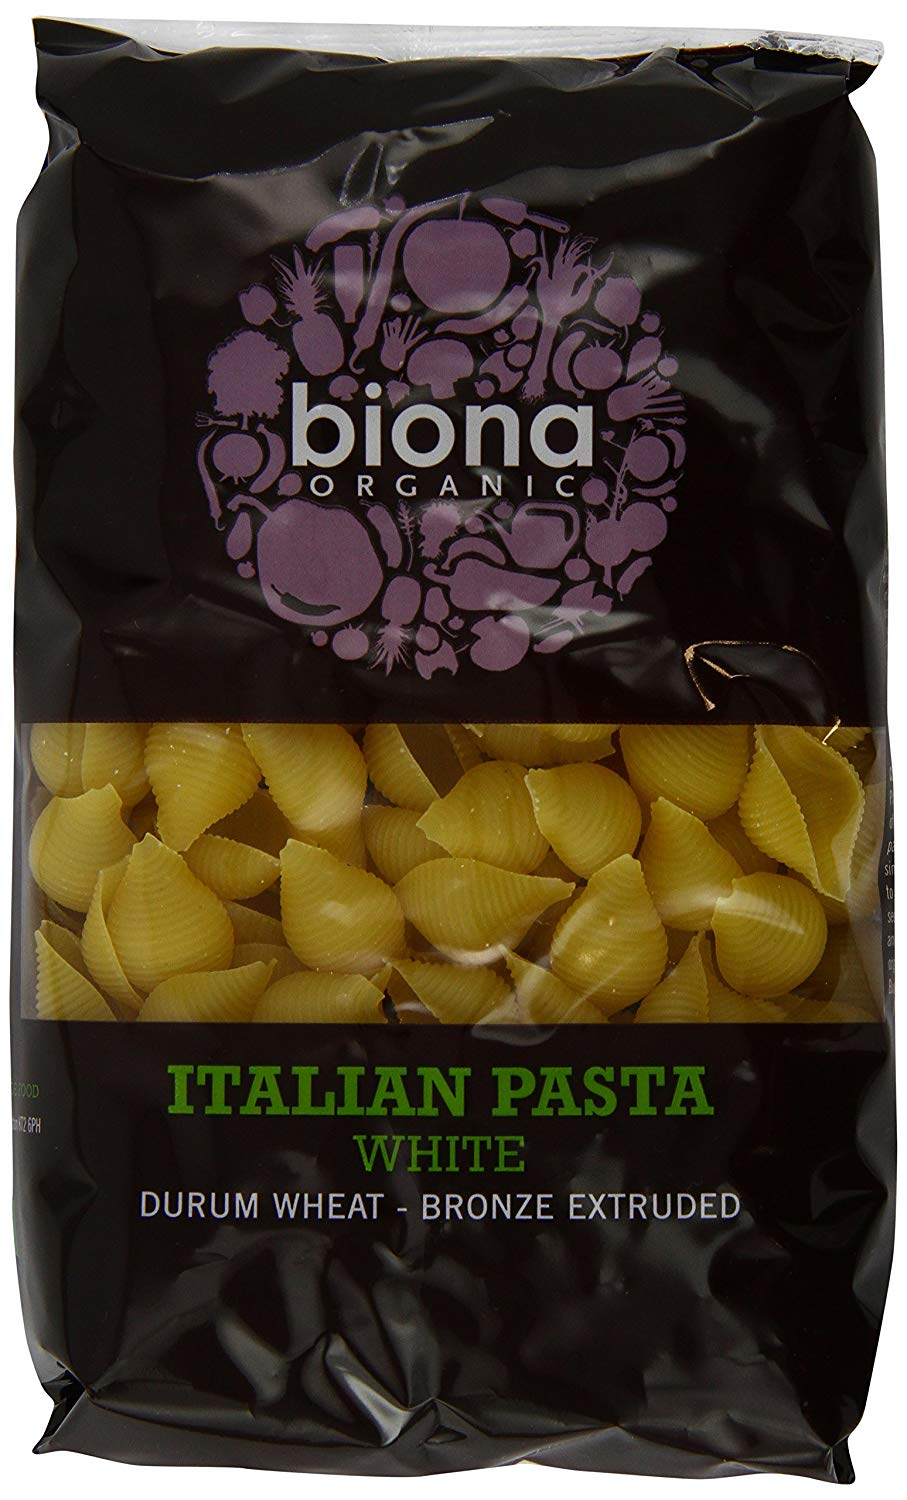 Biona Organic Wheat Pasta White Conchiglie 500g (Pack of 12) £16.12